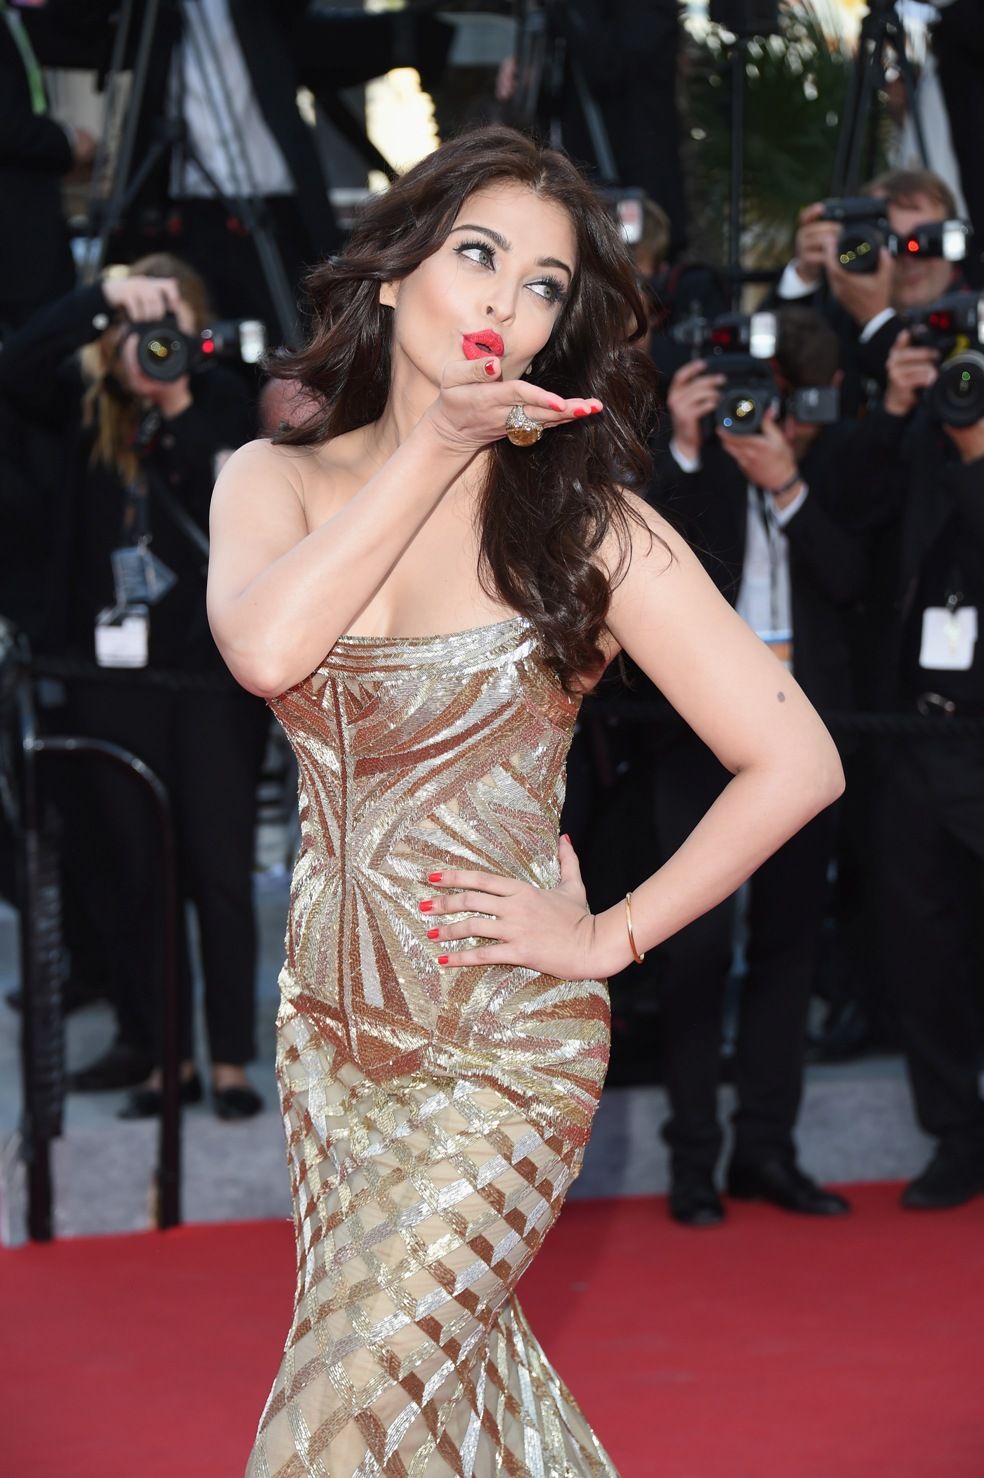 aishwarya-rai-at-cannes-film-festival-2014- (24)